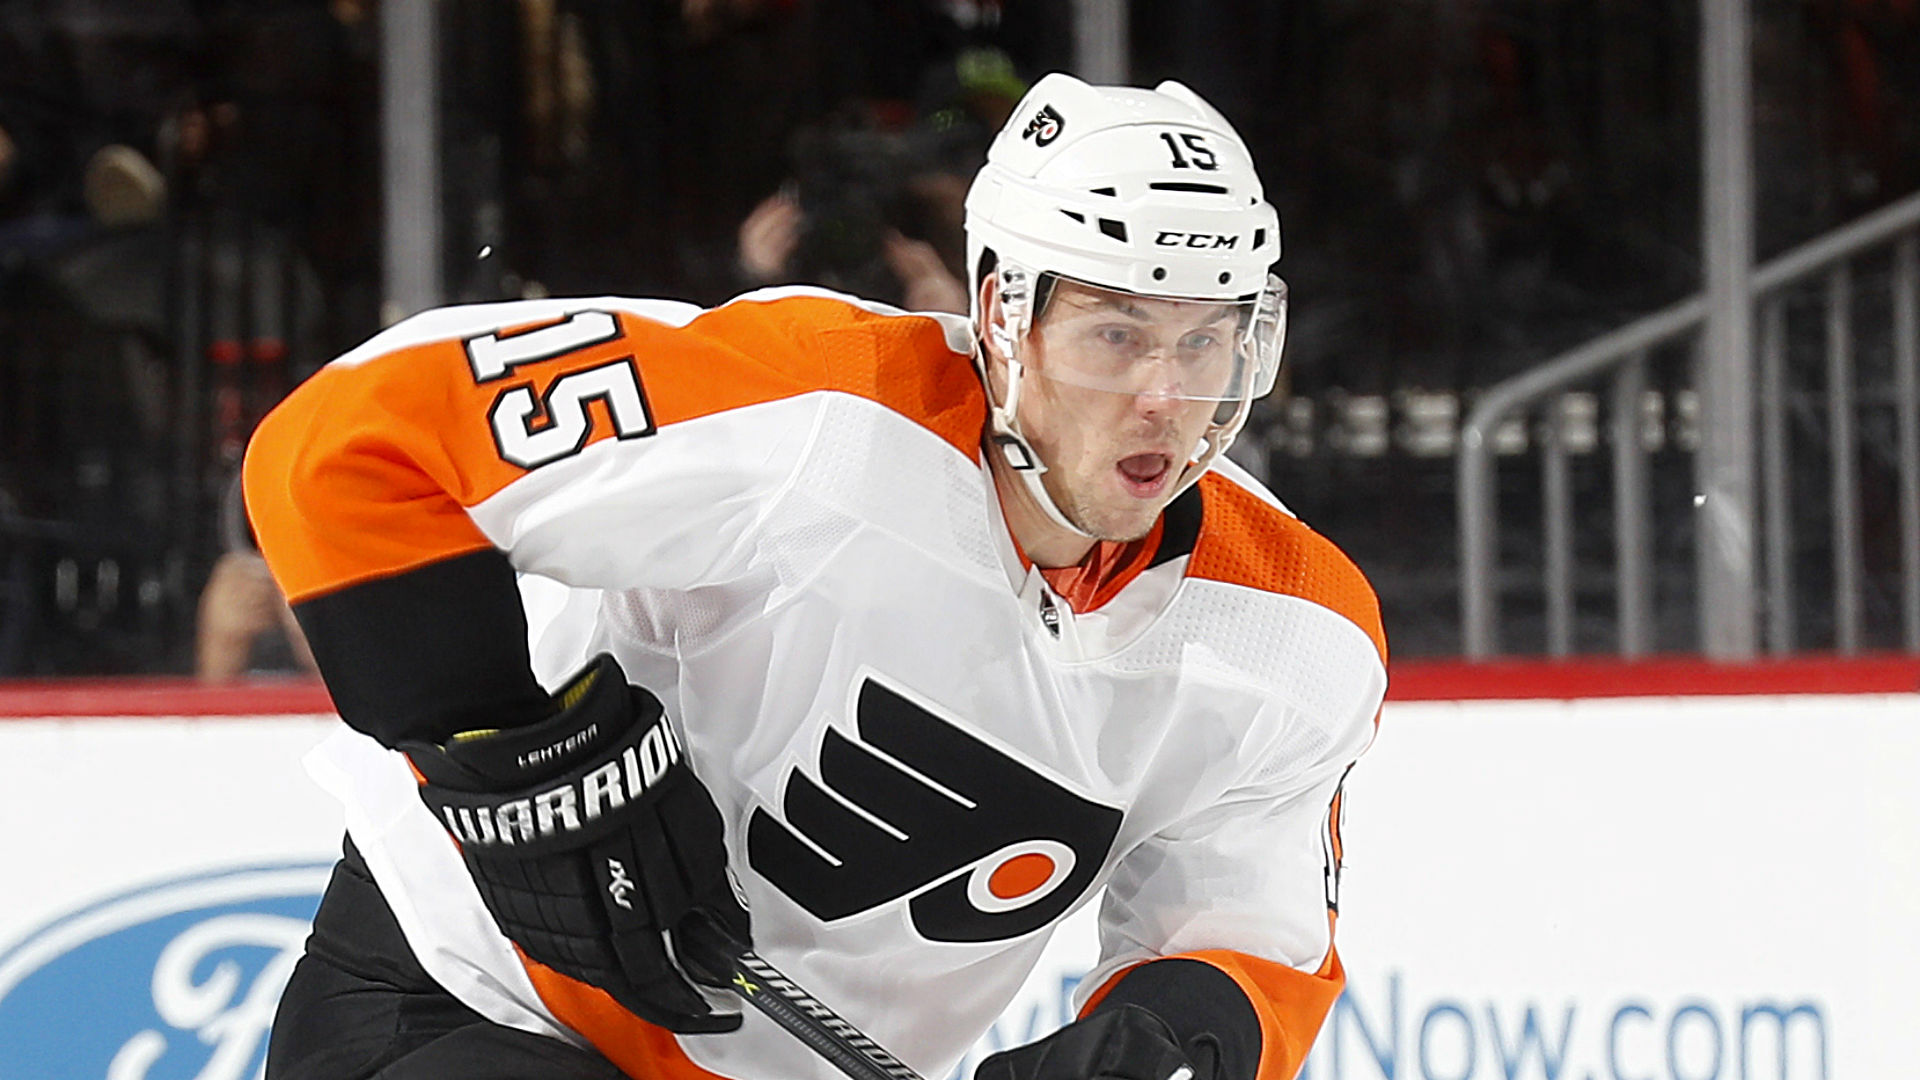 National Hockey League  to investigate Lehtera after drug story